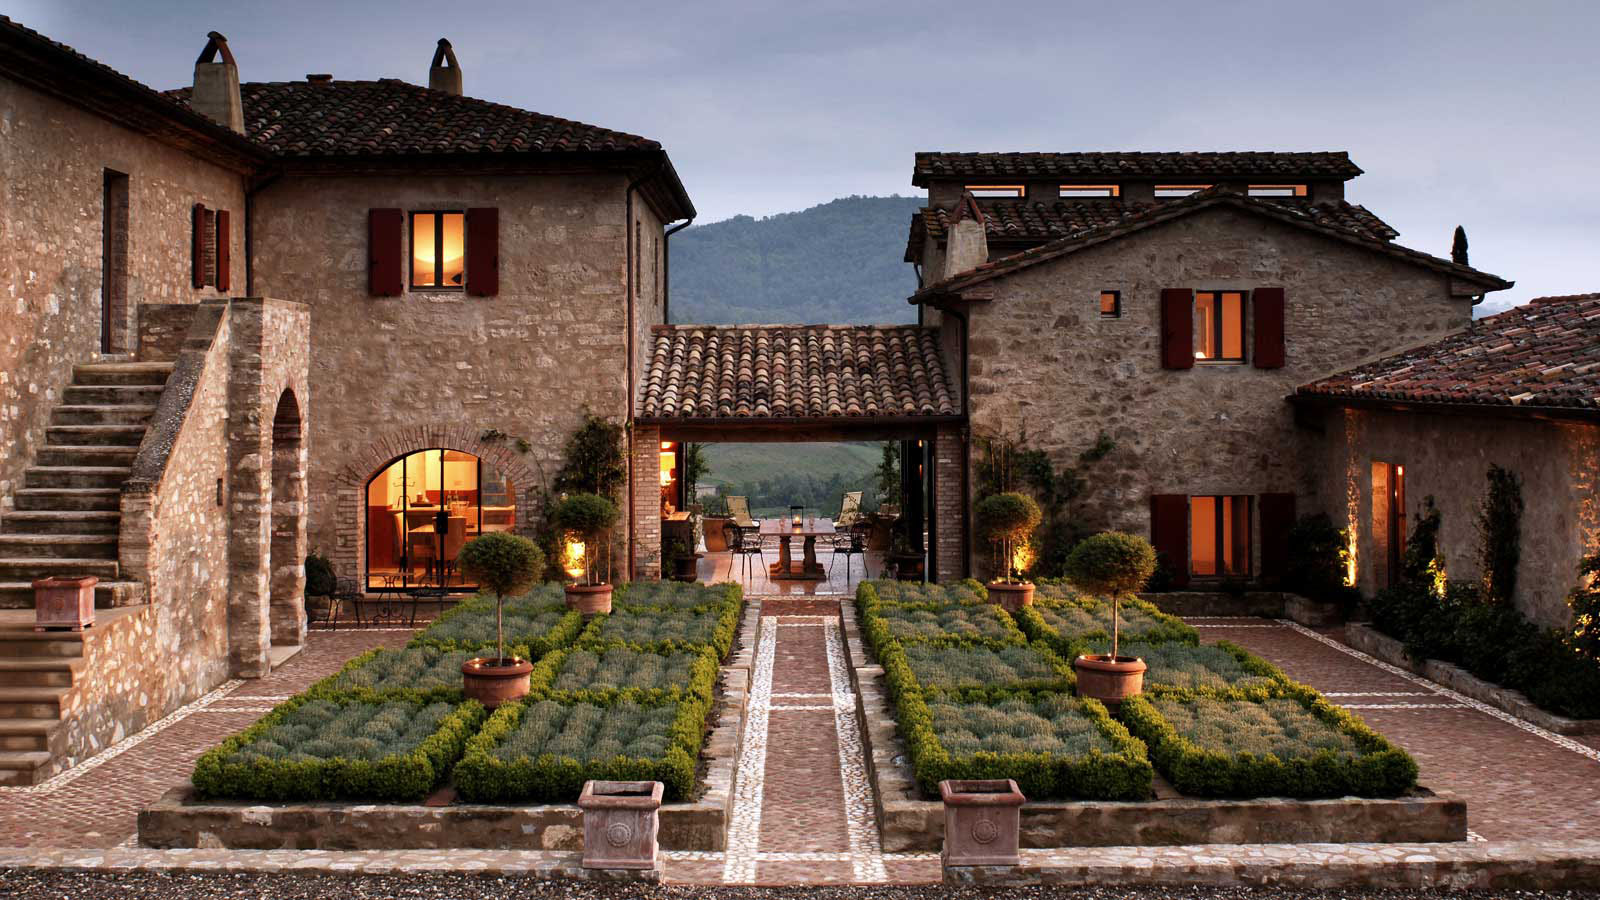 Castello di reschio estate in umbria idesignarch for Italian house